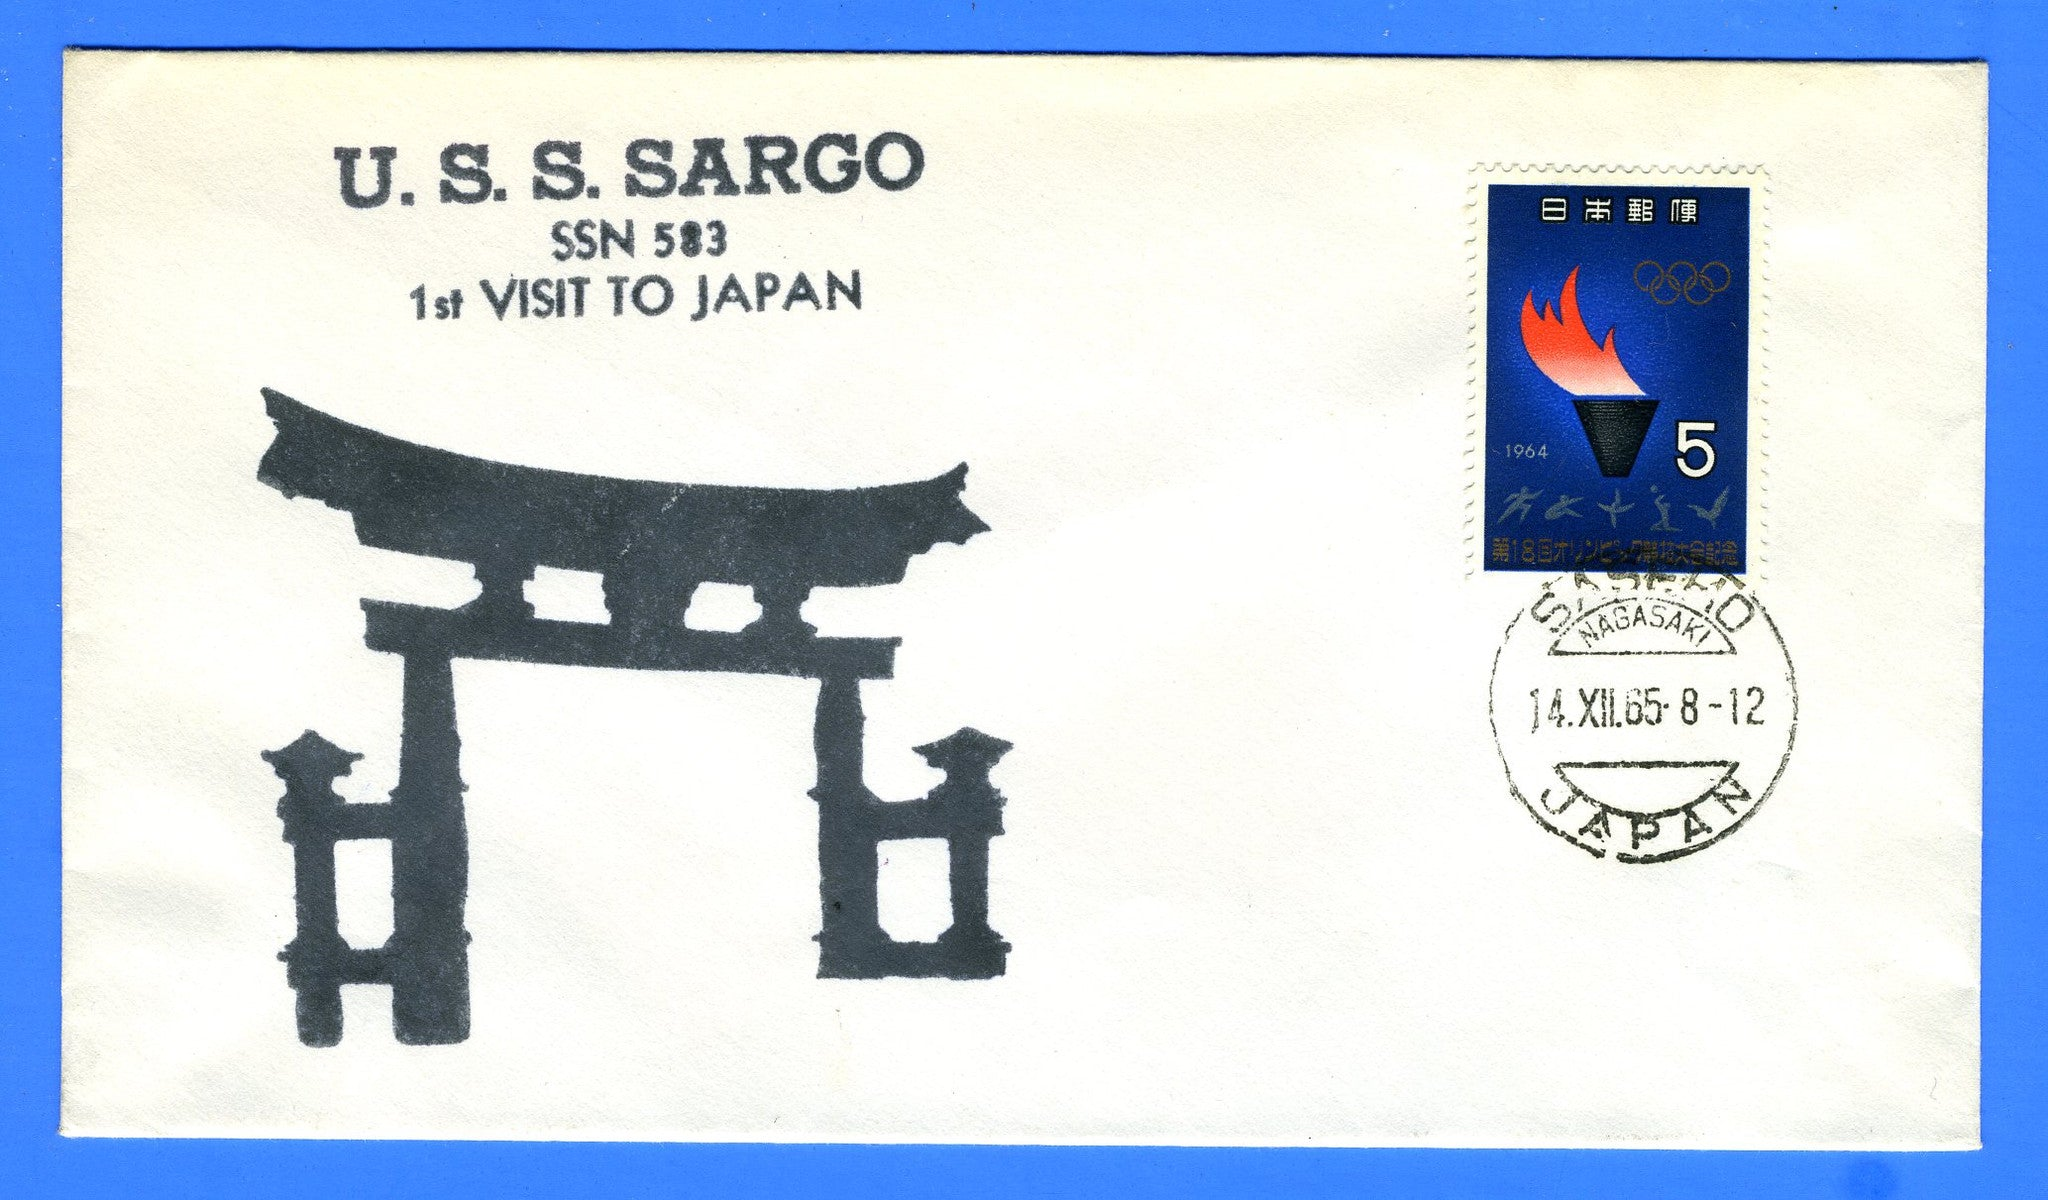 USS Sargo SSN-583 1st Visit to Japan December 14, 1965